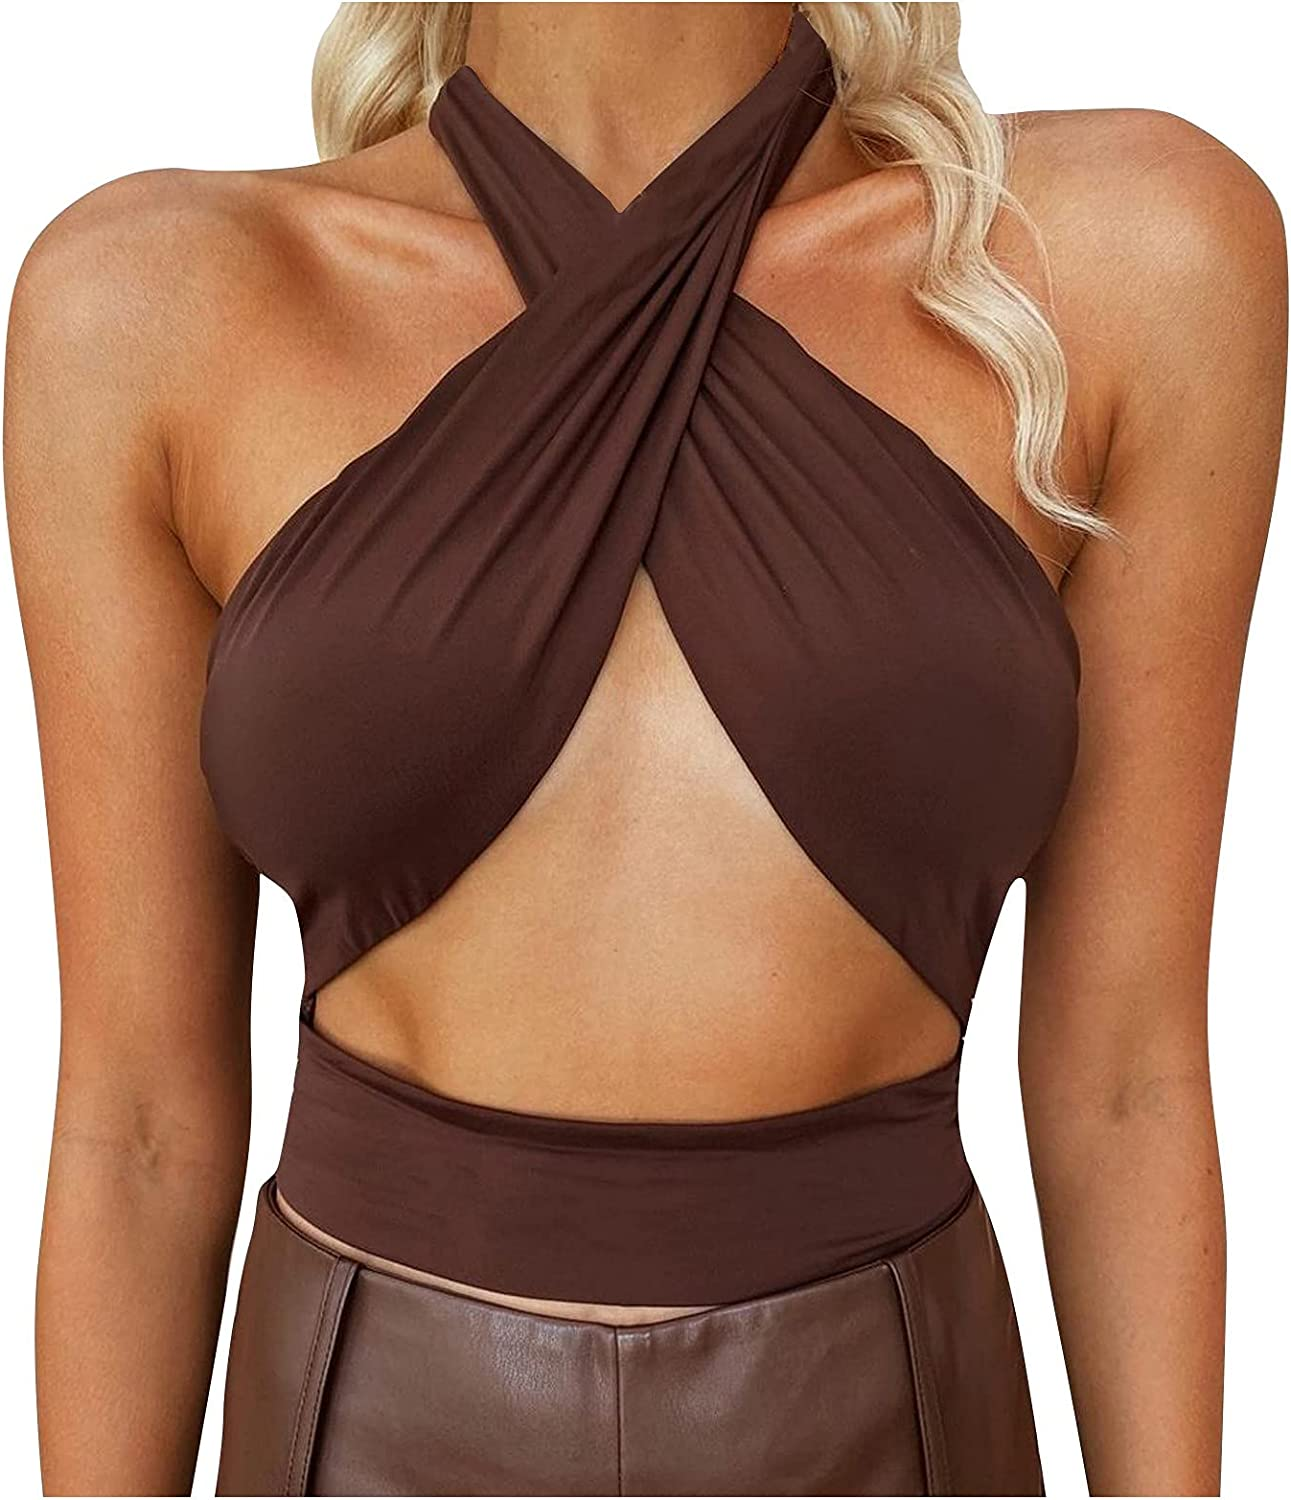 Women's Criss Cross Cut 67% OFF of fixed price Out Crop Tops Bandage Halter Super popular specialty store Sleeveless